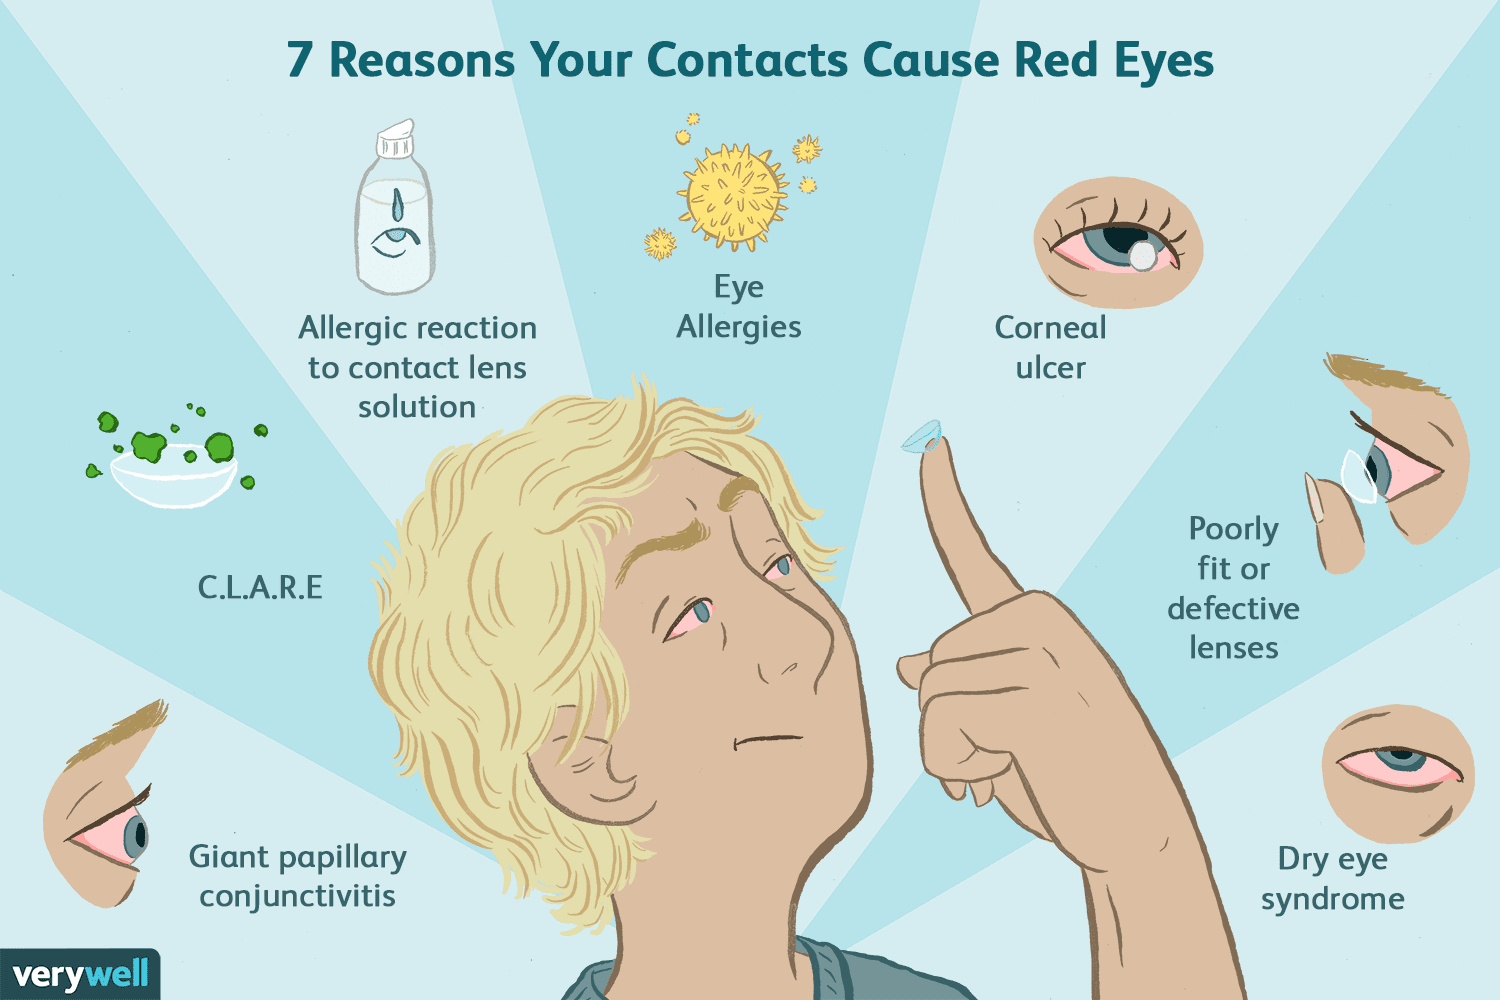 Causes of Red Eyes in Contact Wearers